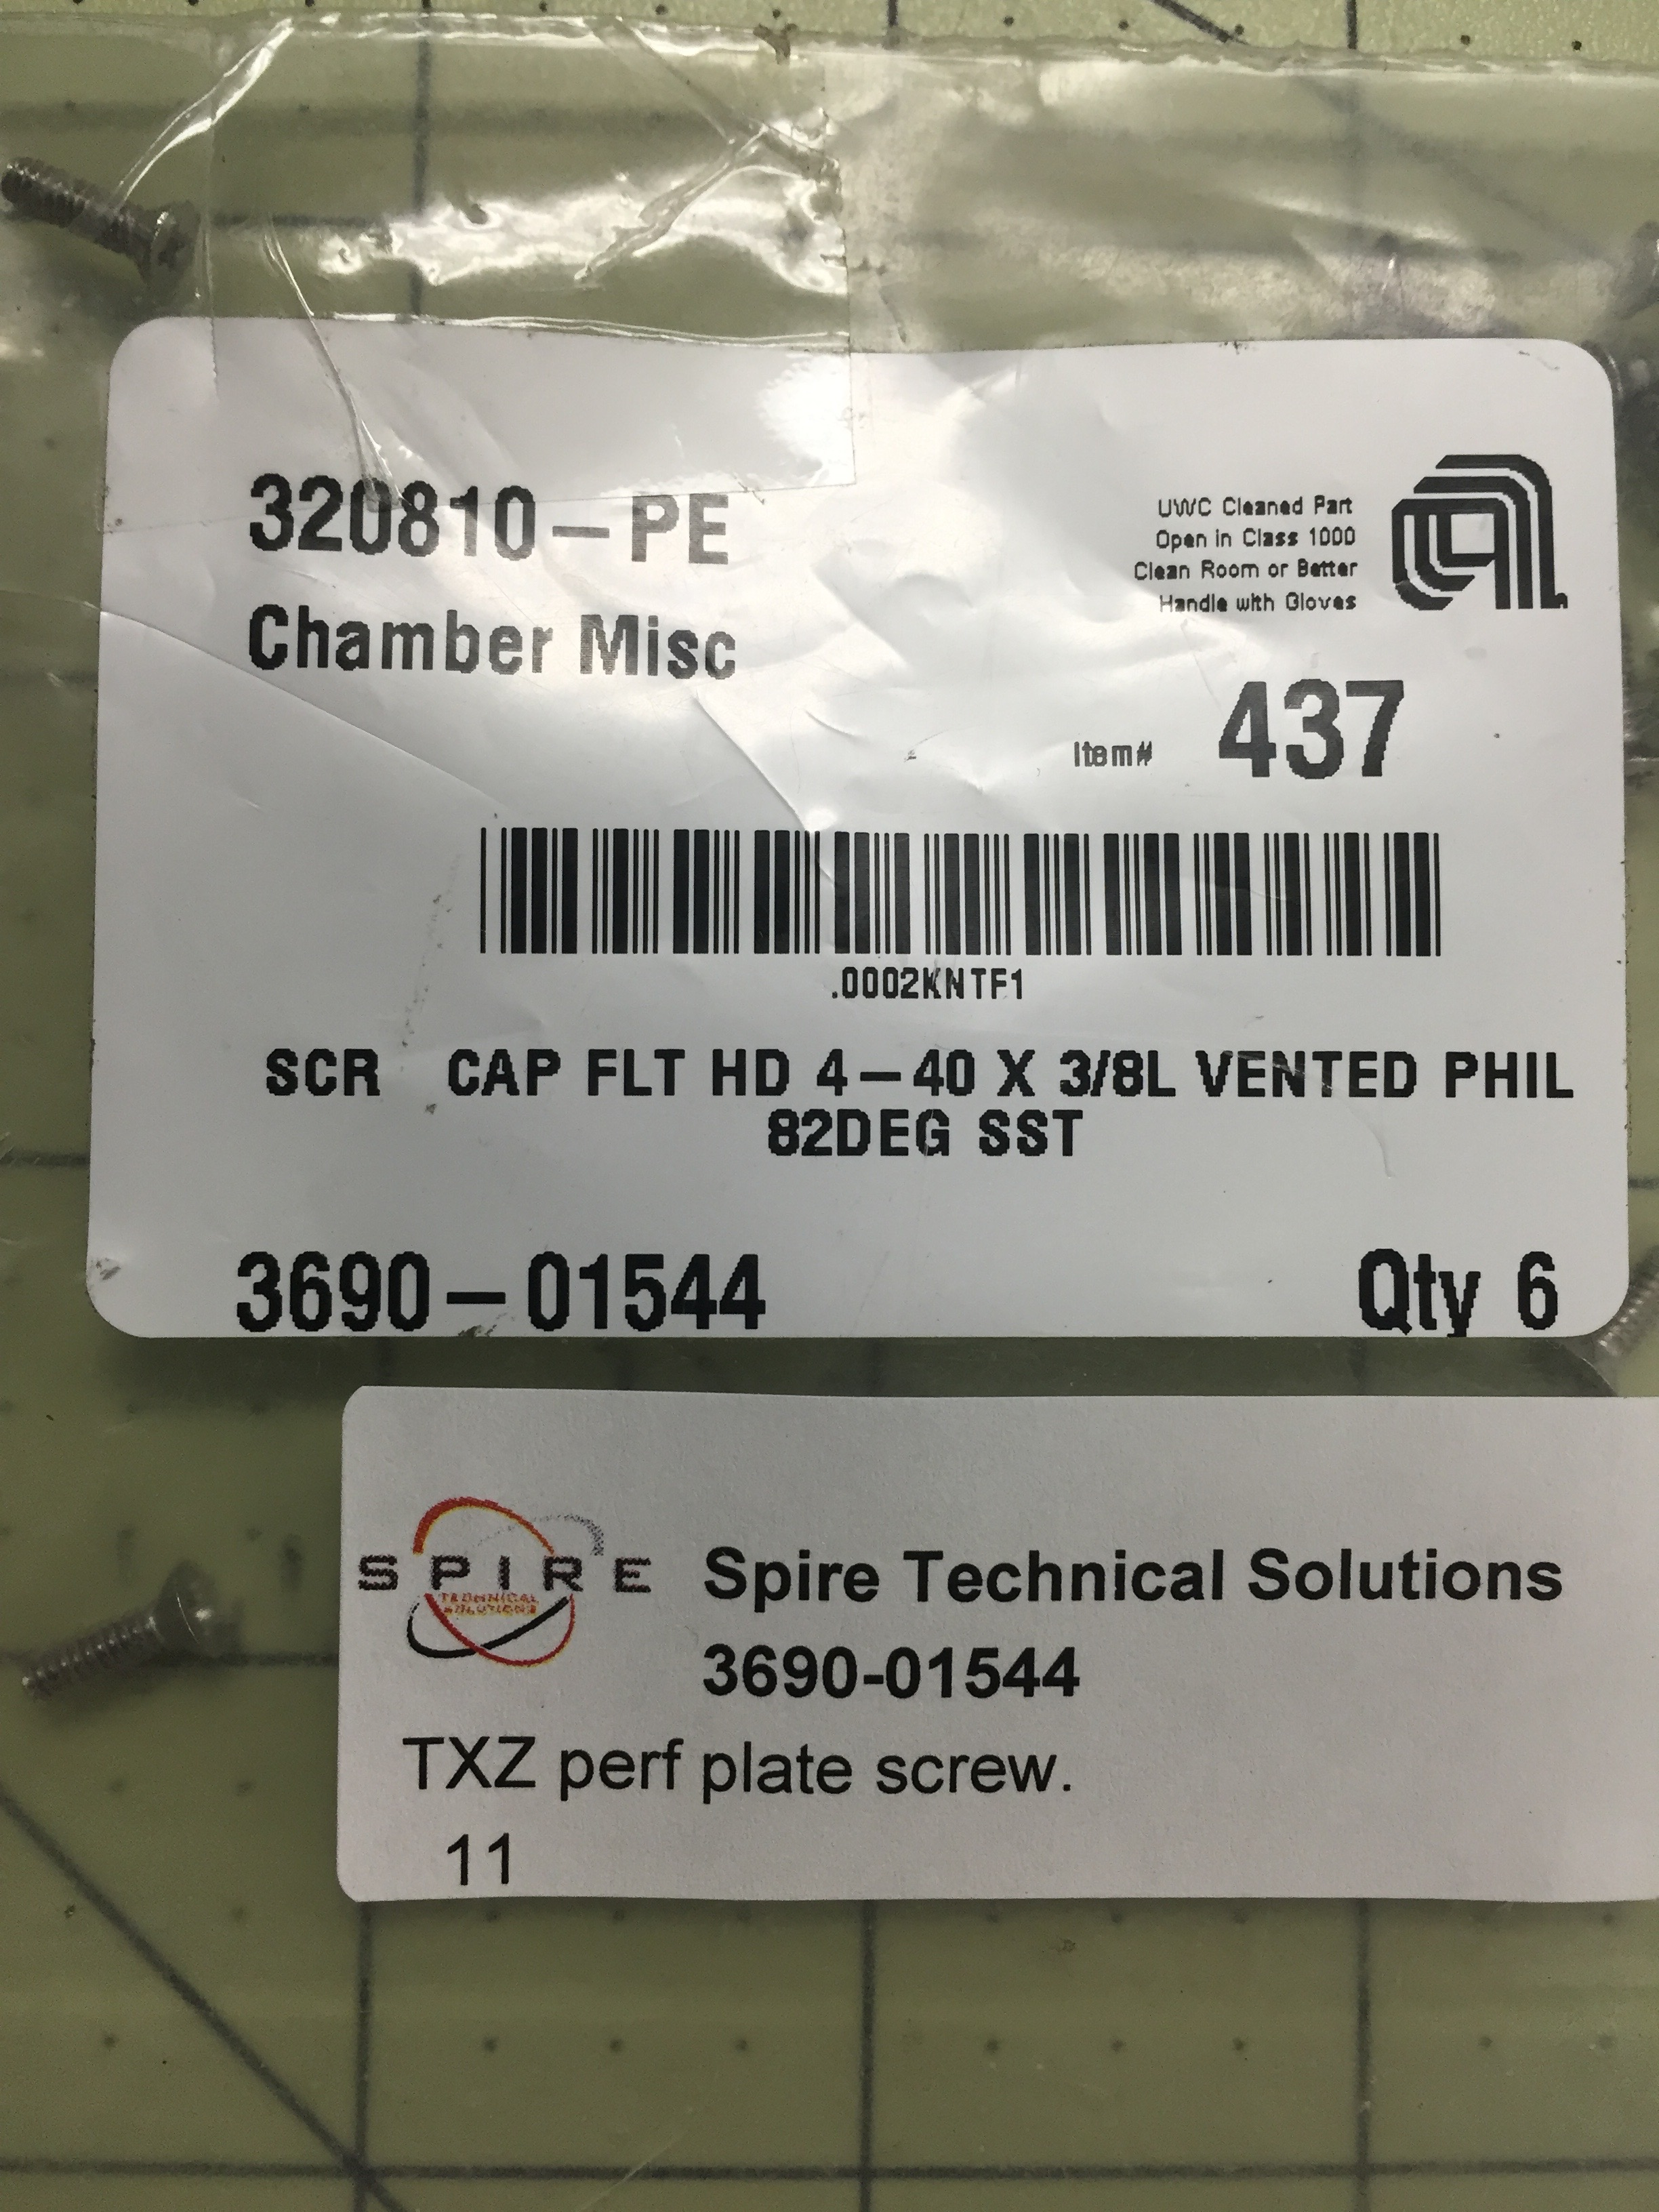 TXZ perf plate screw